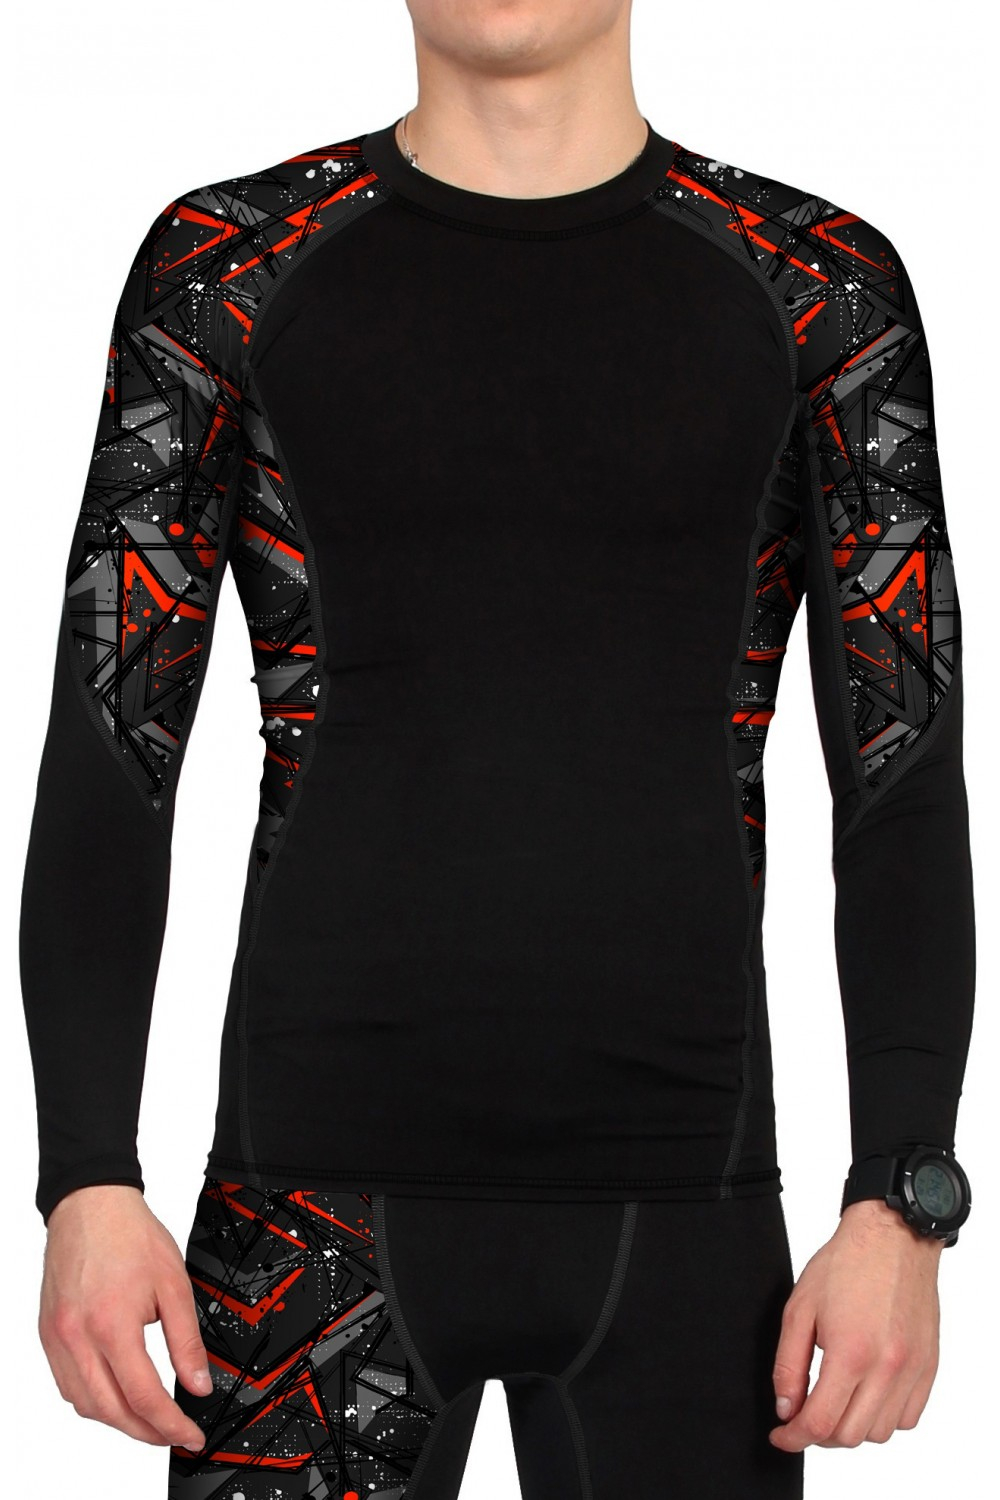 "Рашгард мужской спортивный ""Super Fit Compression"" арт. М4004"